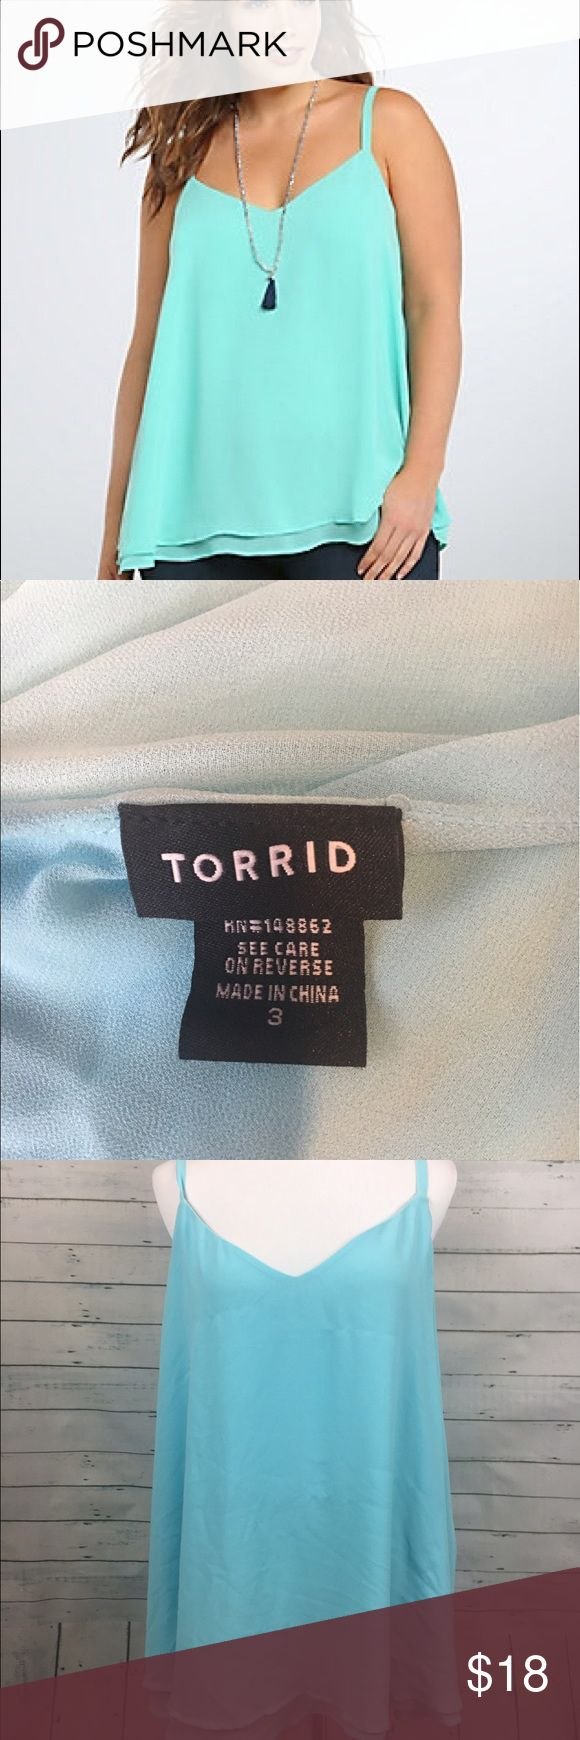 "Torrid double layer chiffon cami tank blue Torrid Women's Plus Size v-neck light blue tank top. size 3. Some loose threads minor pulls  armpit to armpit-26.5"" overall length-31.5"" torrid Tops Camisoles"